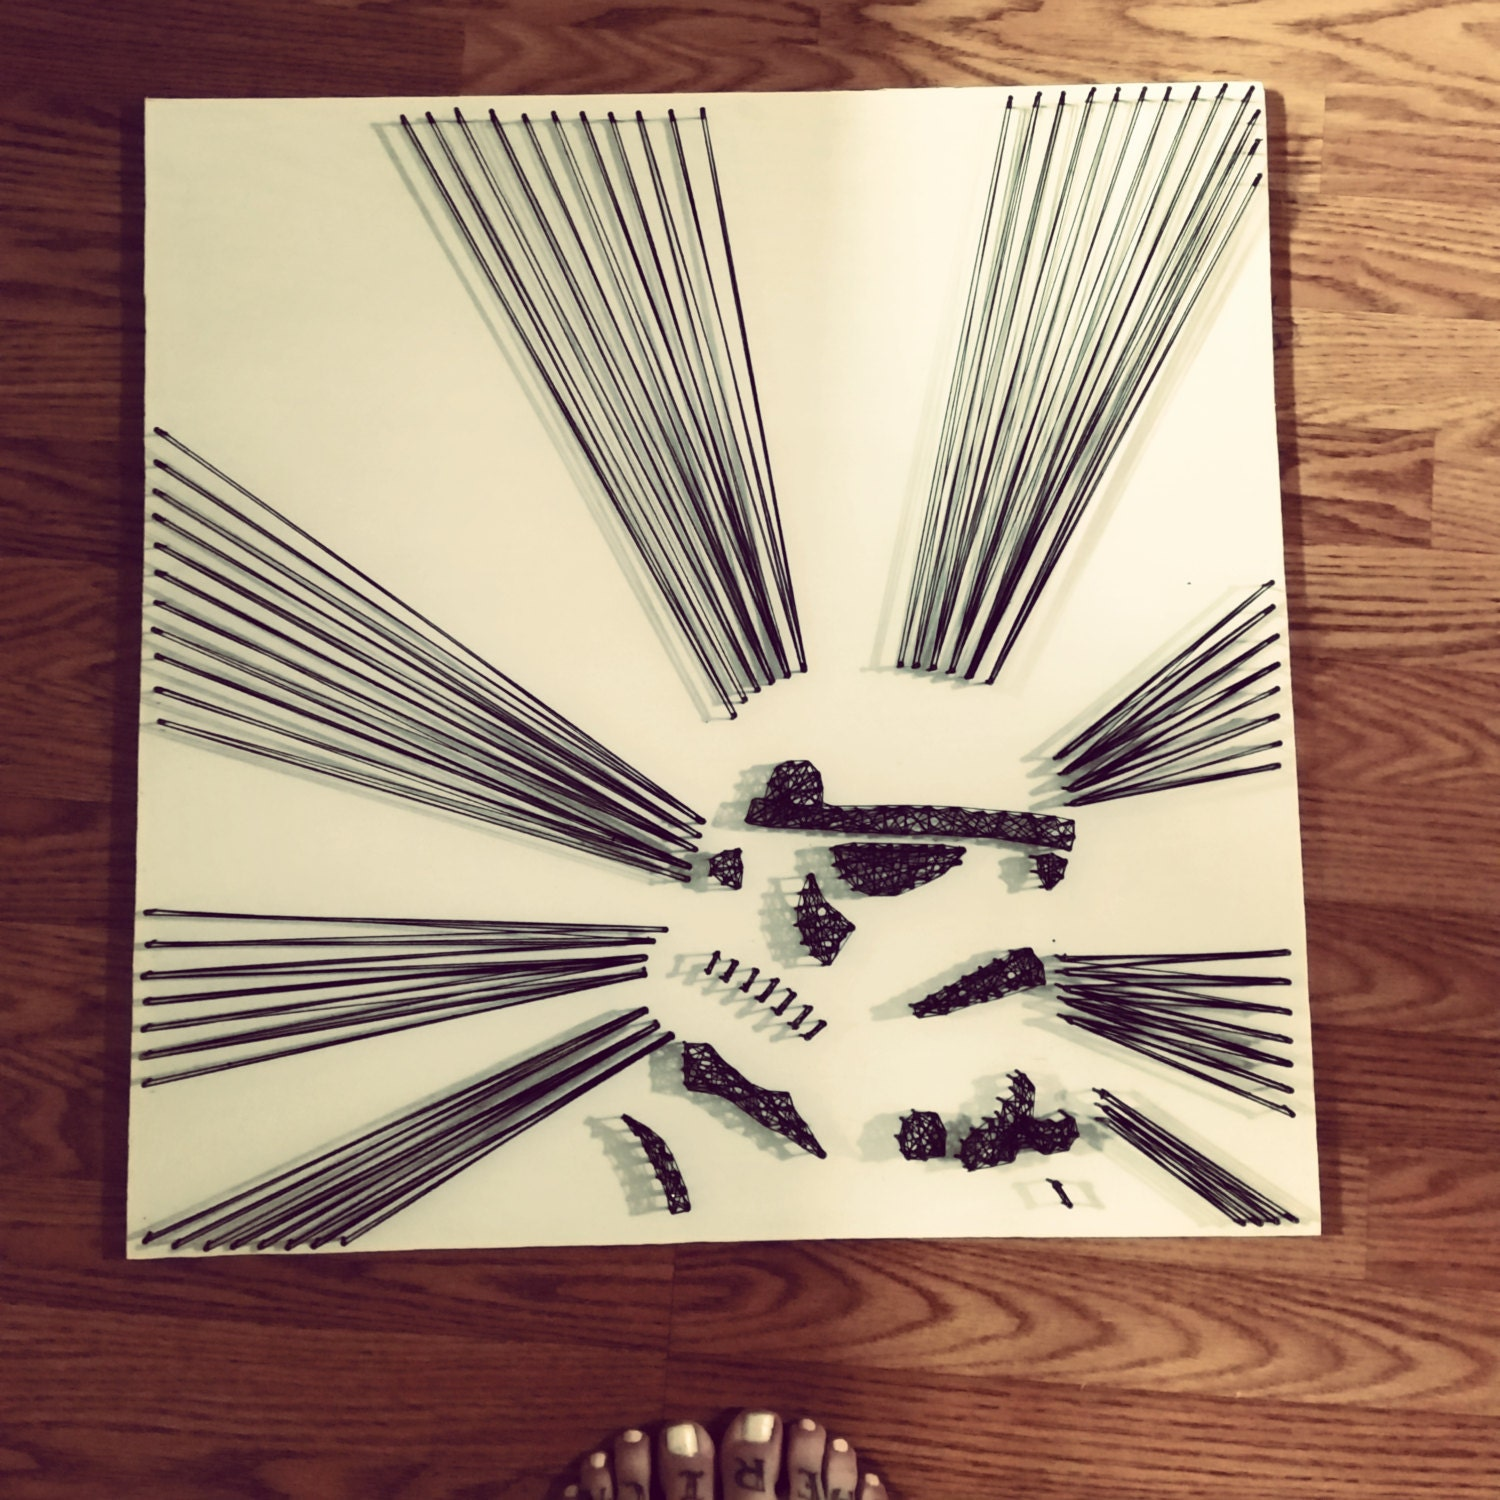 Star wars storm trooper string art - String art modele ...